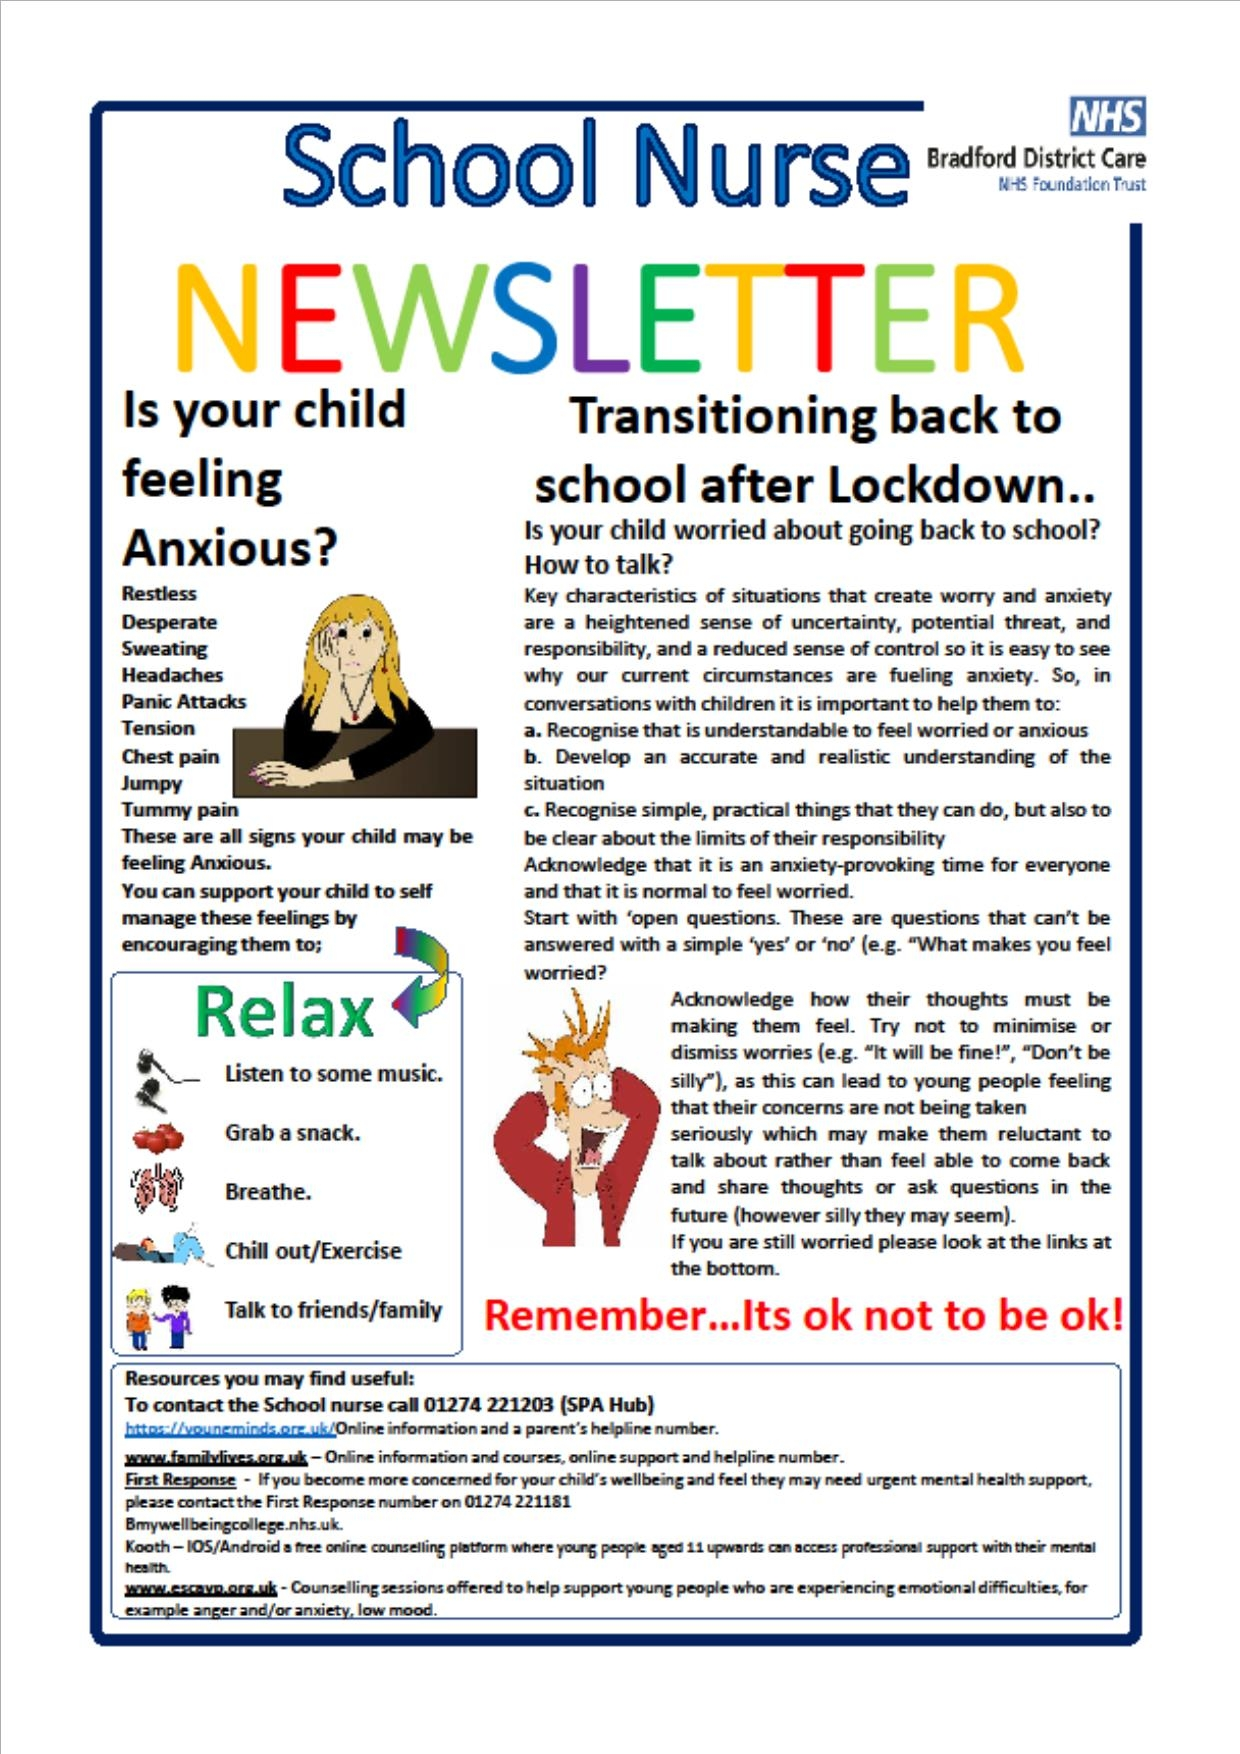 School nurse newsletter